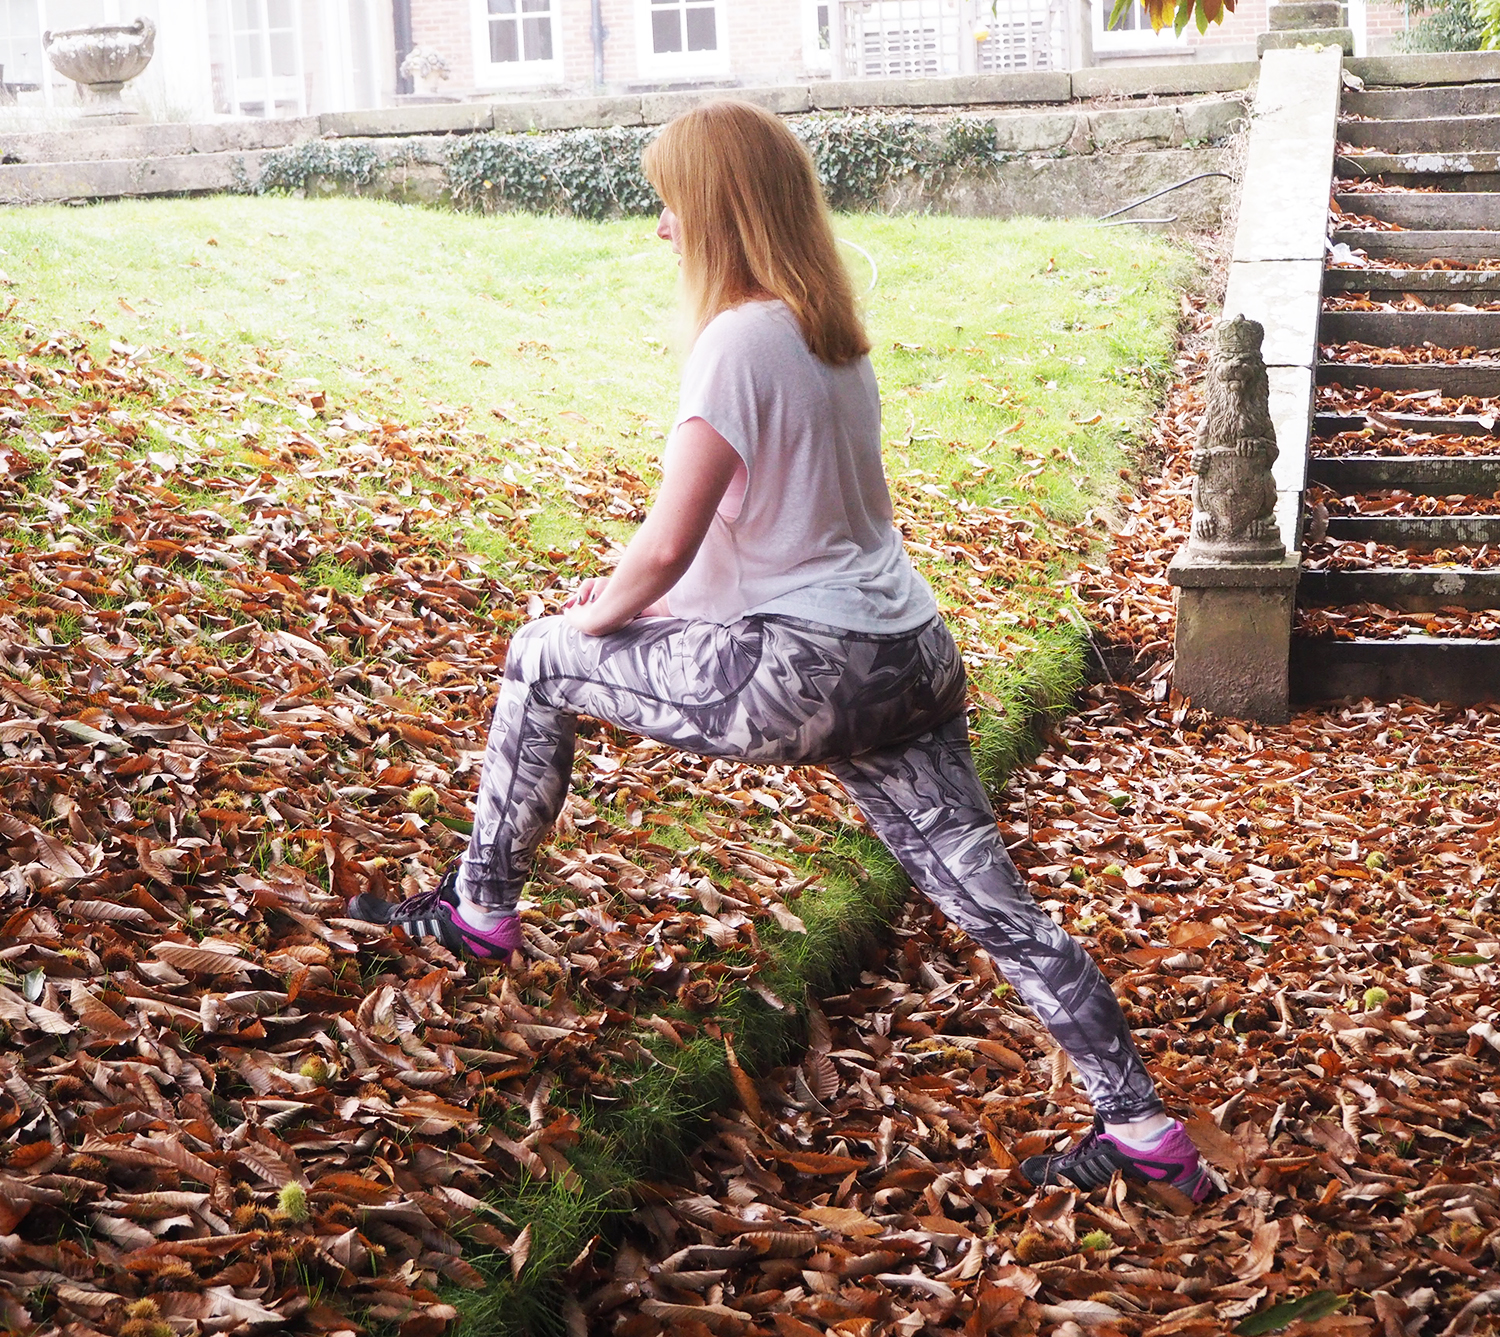 Exercise top tips with Sweaty Betty